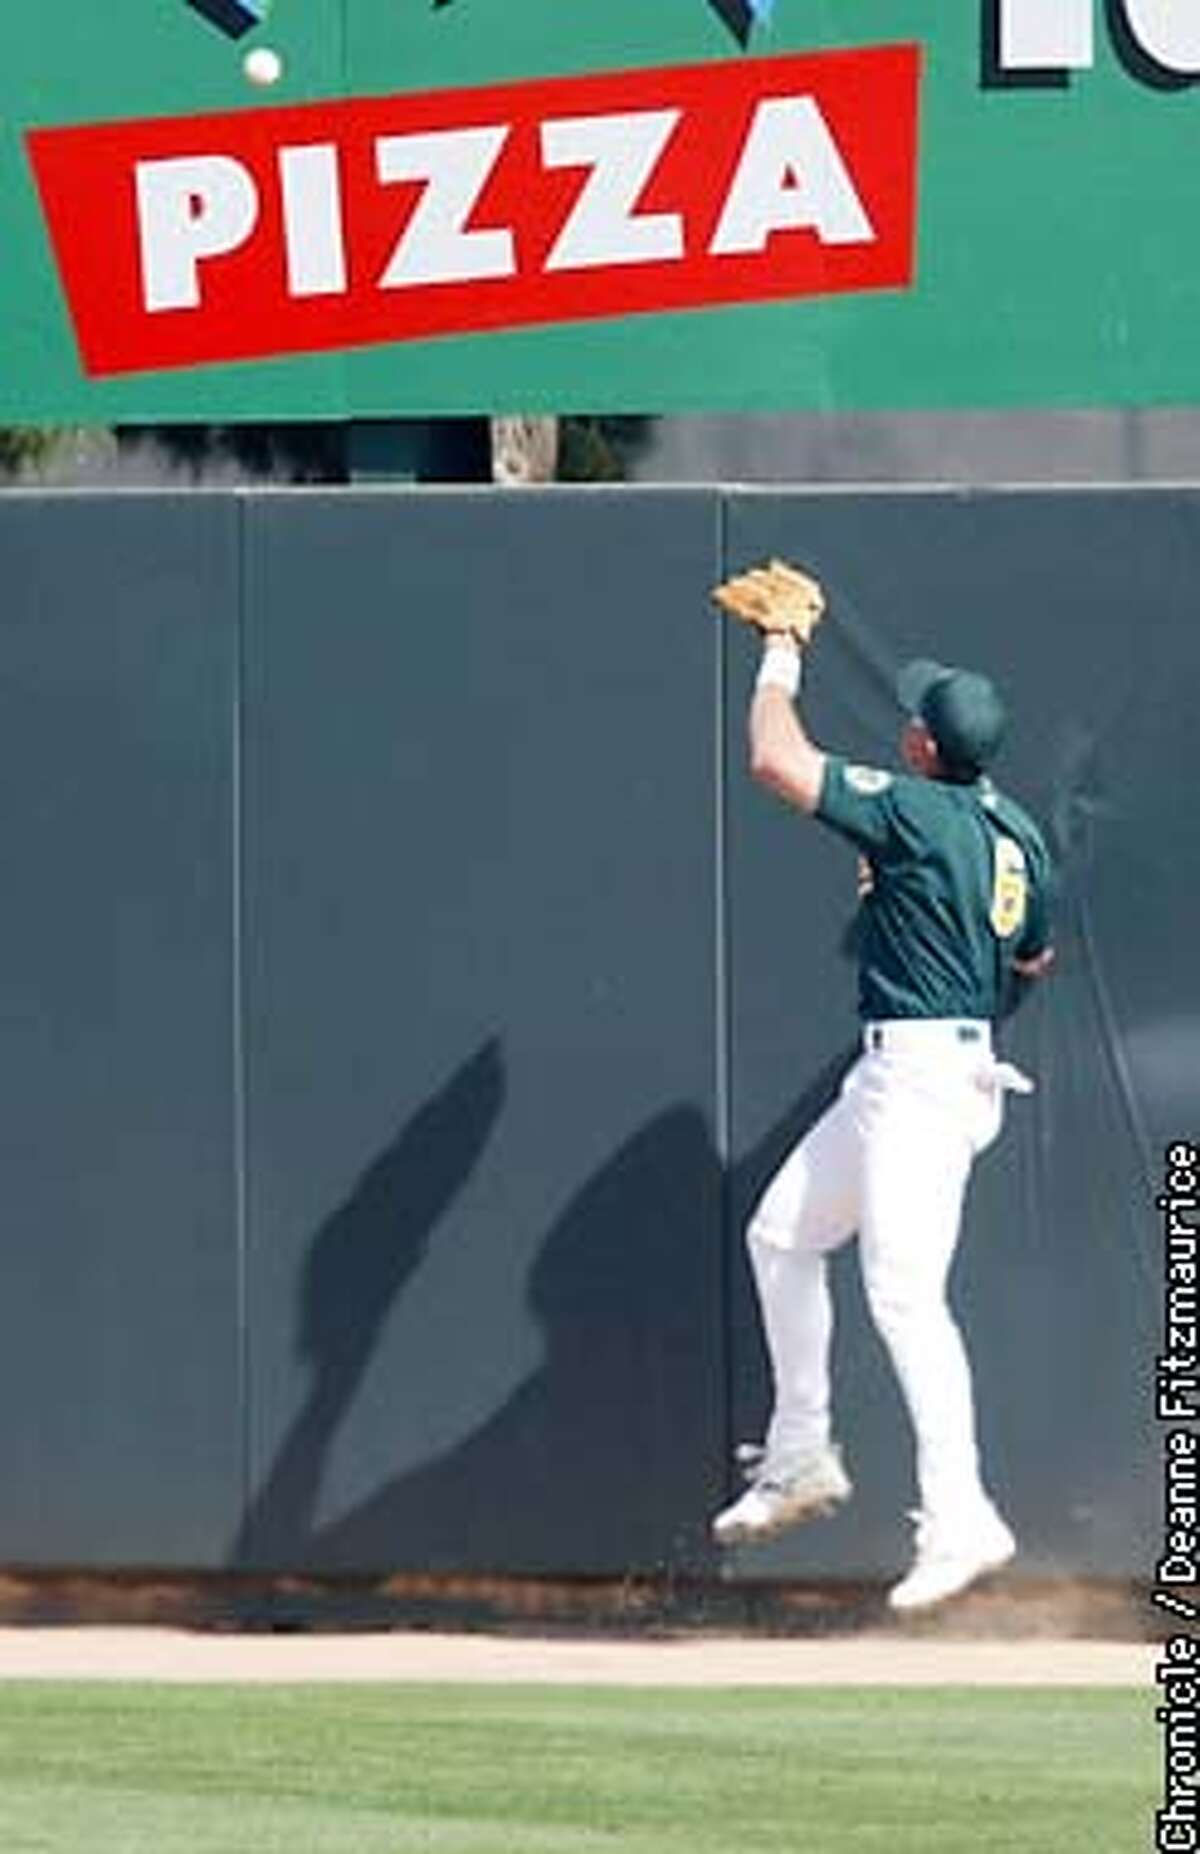 """Geoff Jenkins' 2 run homer dotted the """"i"""" in pizza on this sign as rightfielder Adam Piatt tried in vain to save it. Oakland A's vs Milwaukee Brewers at spring training in Phoenix, Arizona. CHRONICLE PHOTO BY DEANNE FITZMAURICE"""